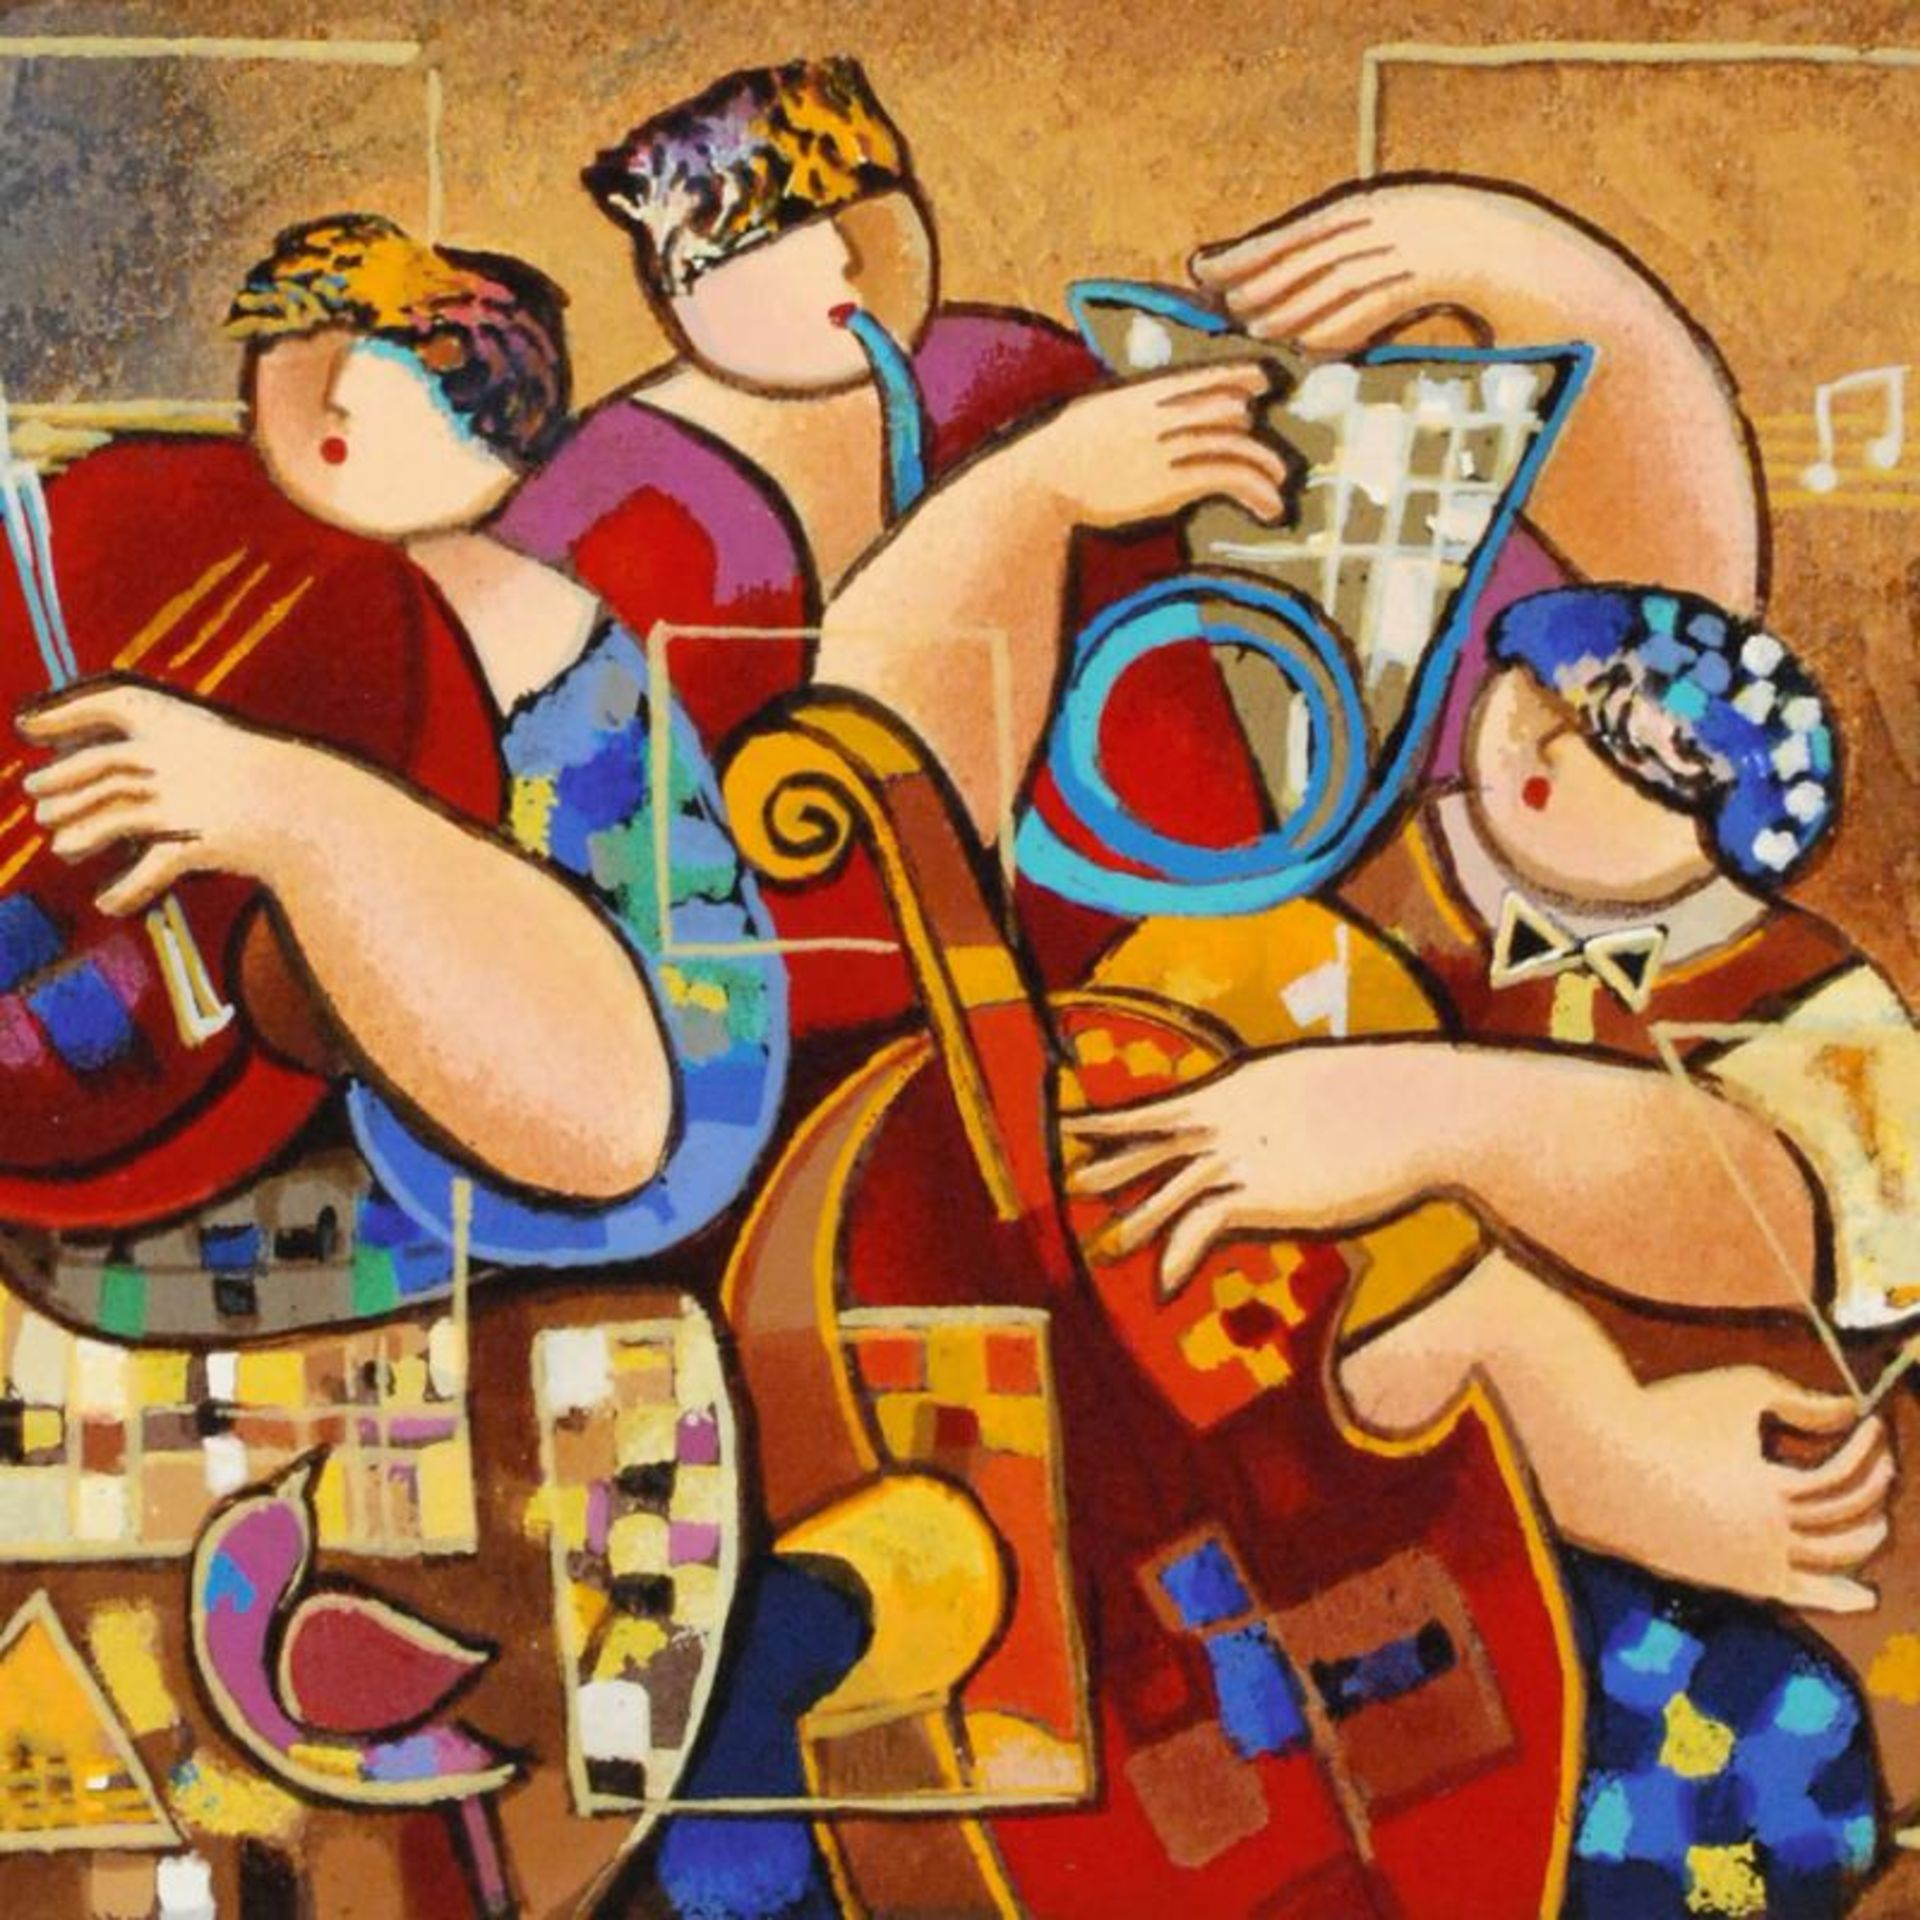 """Dorit Levi, """"Trio Chorus"""" Limited Edition Serigraph, Numbered and Hand Signed wi - Image 2 of 2"""